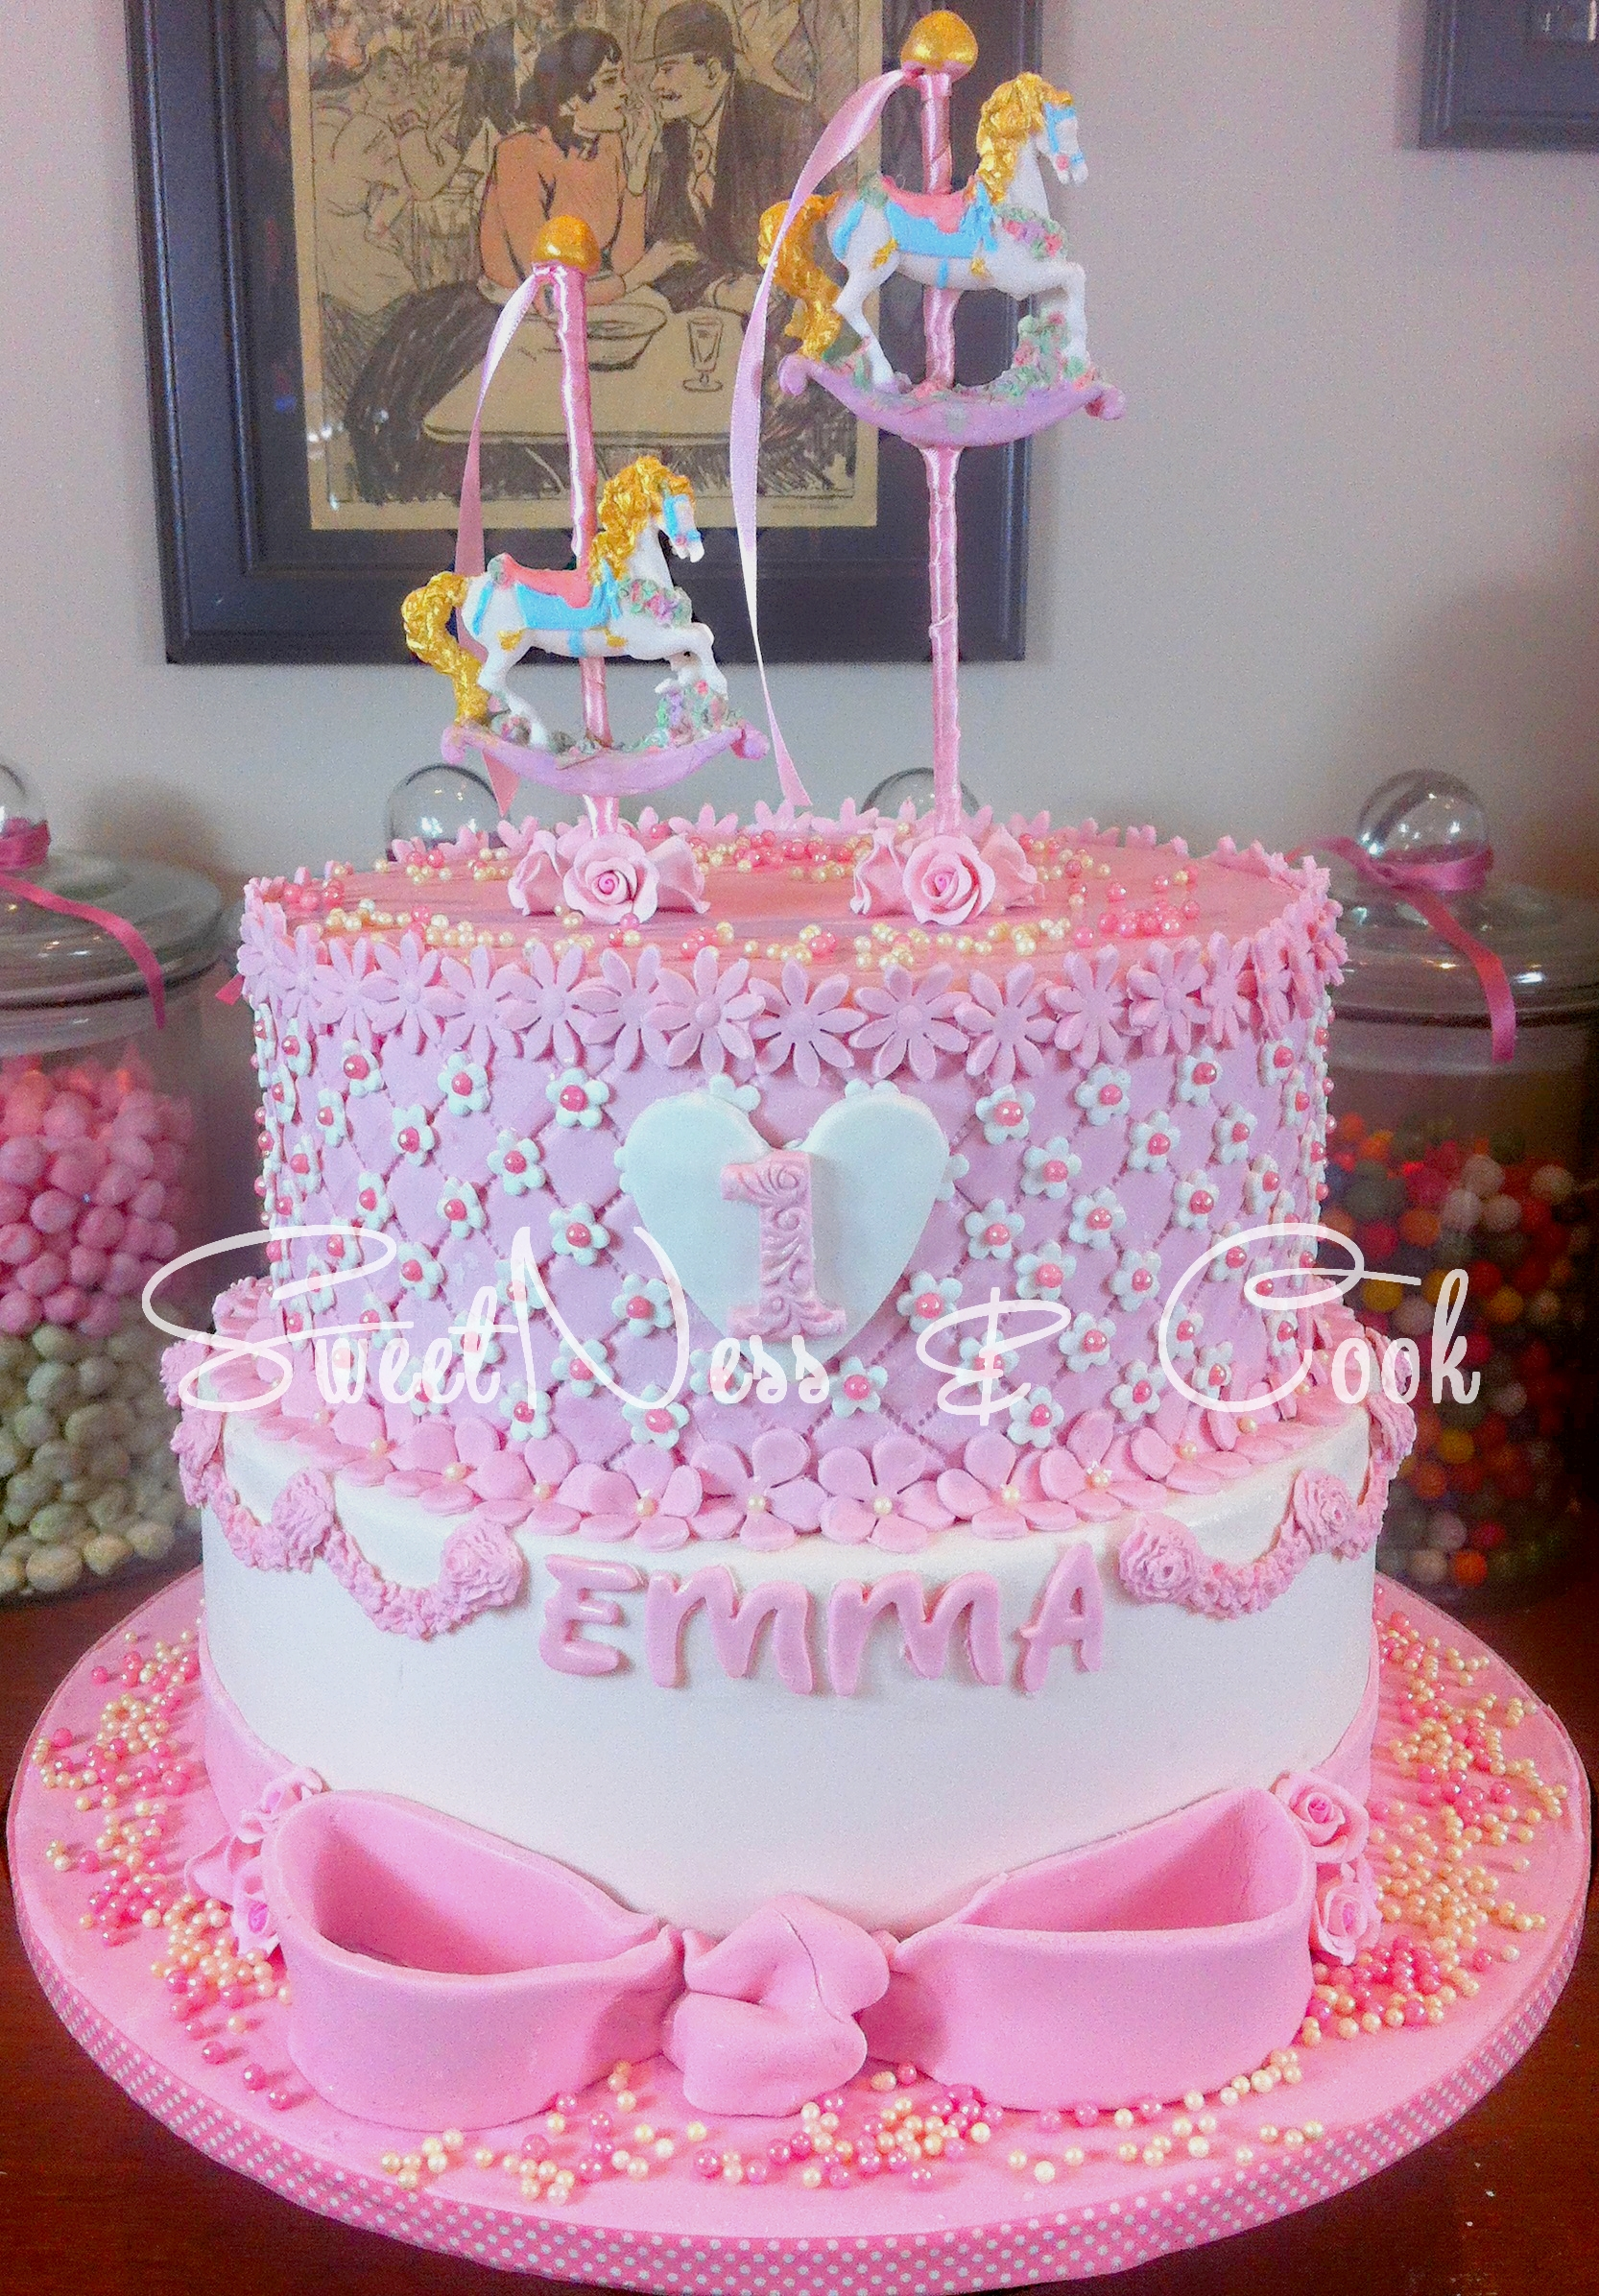 Cake Design Girly & Carrousel